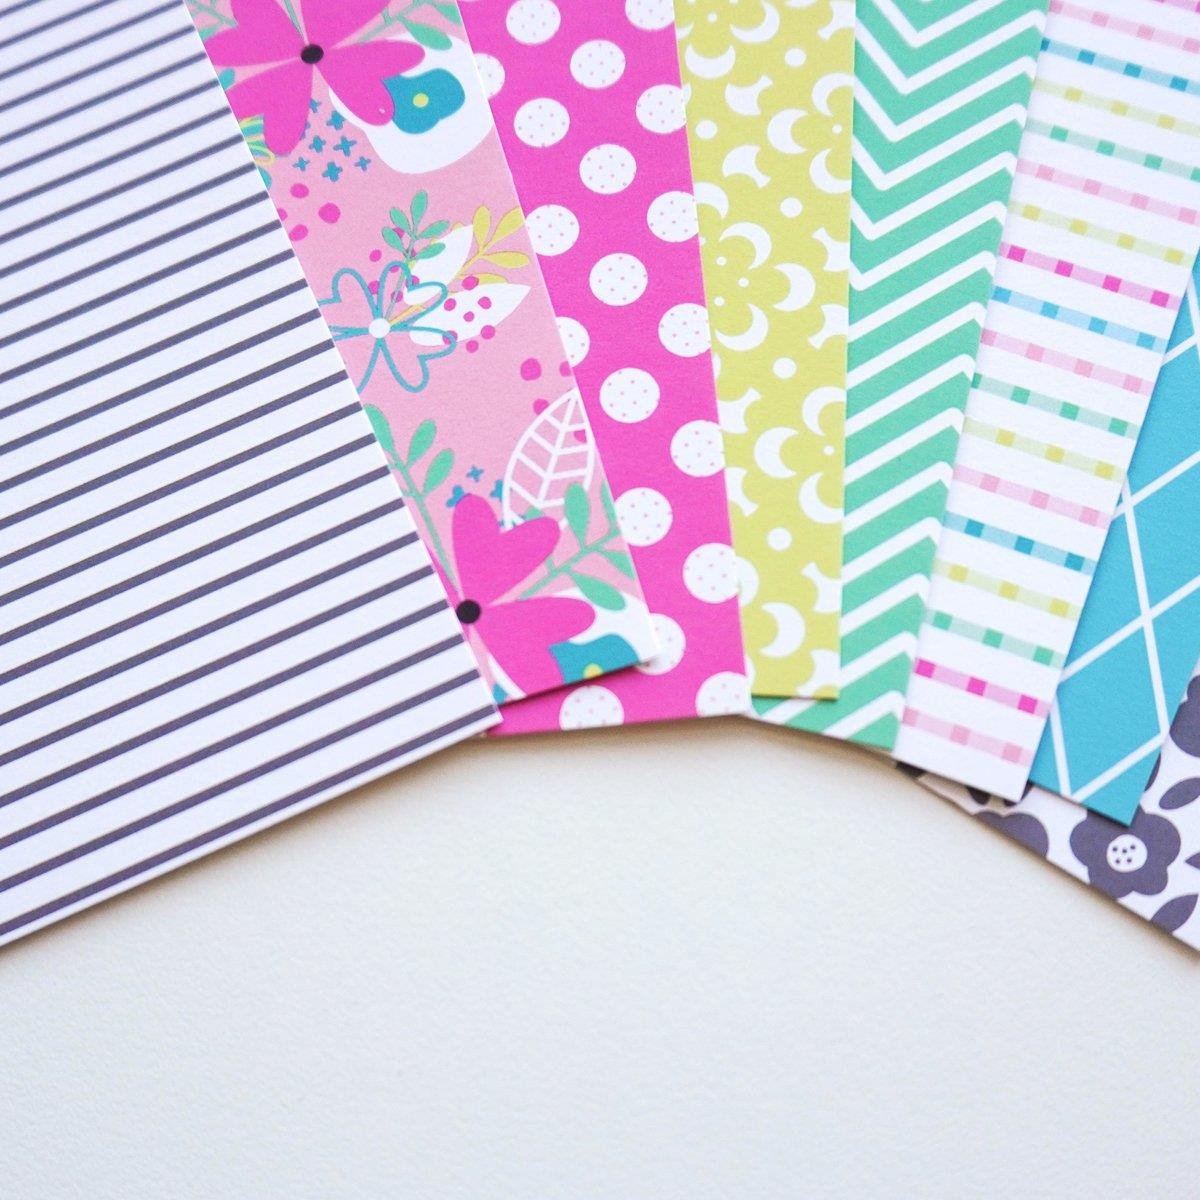 Best Friend Slimline, Catherine Pooler Patterned Paper -